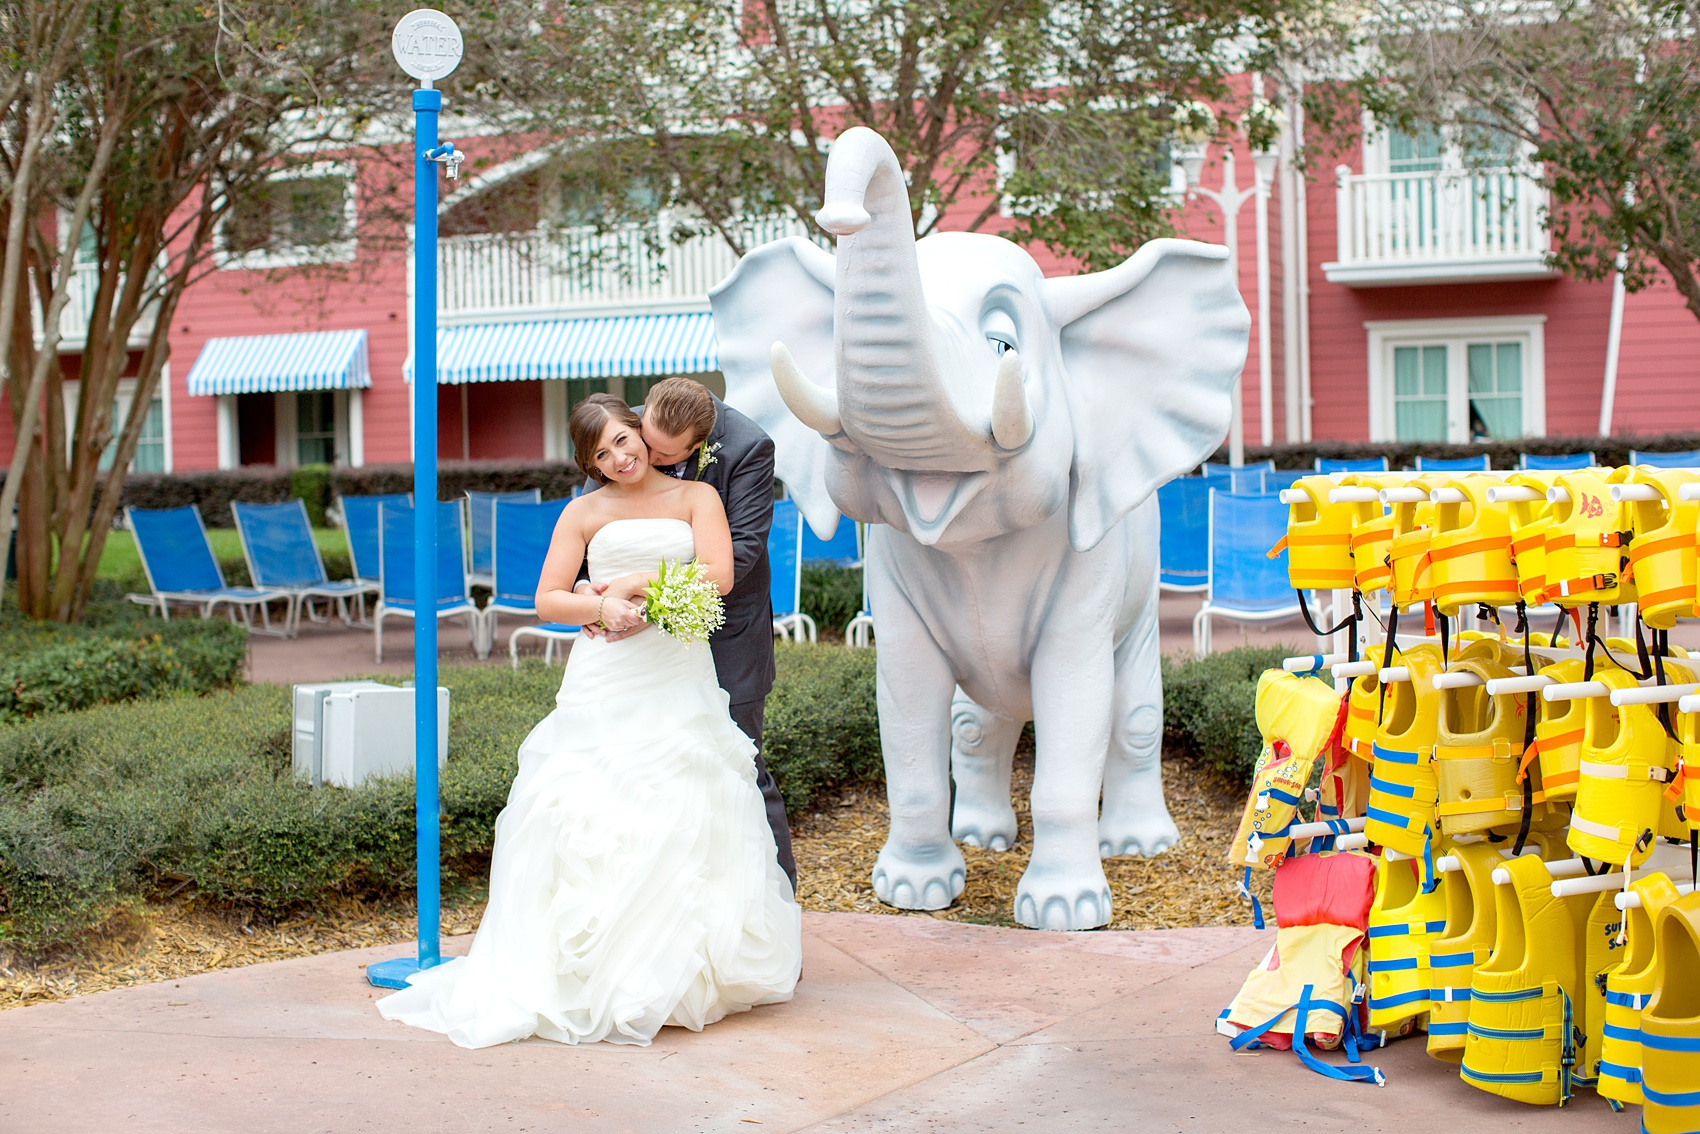 Walt Disney World wedding pictures at the Boardwalk venue, including a waterfront ceremony and Dance Hall reception near Epcot. These photos will give you unique, fun ideas from Glow in the Dark invitations to their Dole Whip flavored cake! Want to see more? Click through to Mikkel Paige Photography for more inspiration from this bride and groom's colorful day! #DisneyWedding #mikkelpaige #disneysboardwalk #DisneyWeddingVenue #DisneyBride #DisneyFan #MickeyEars